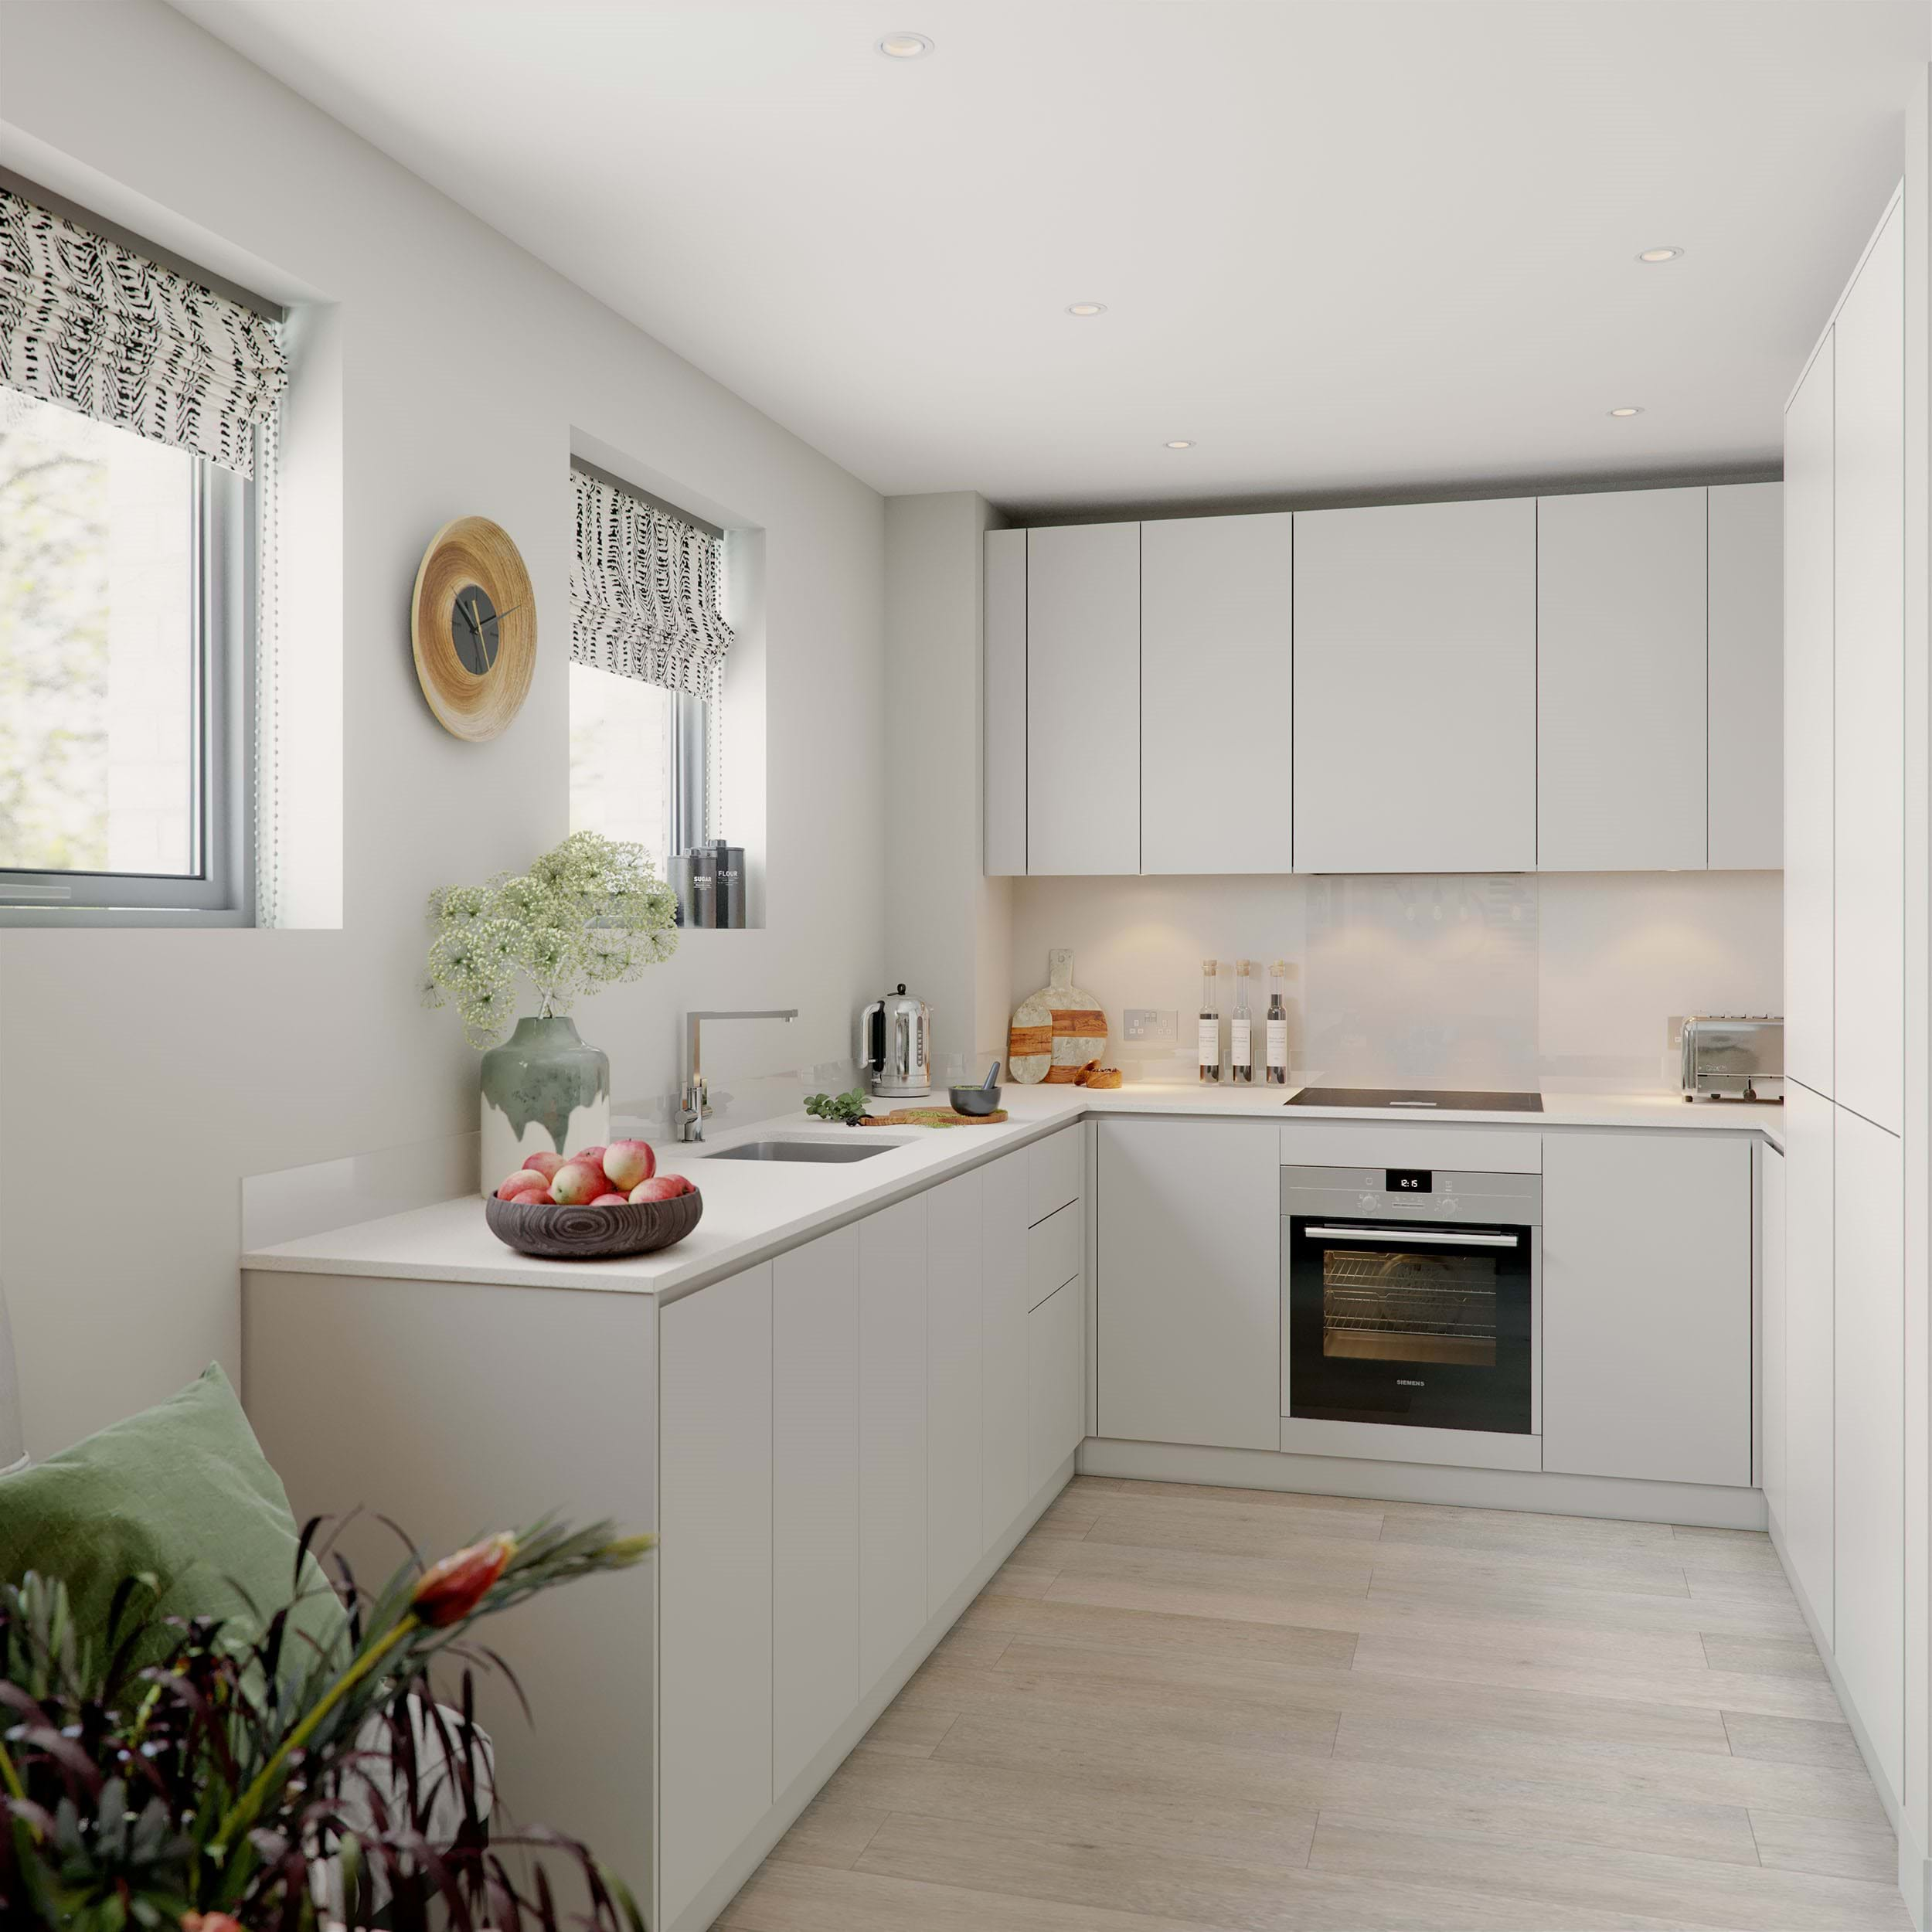 The Pomeroy | Private Sale - Kitchen (CGI)